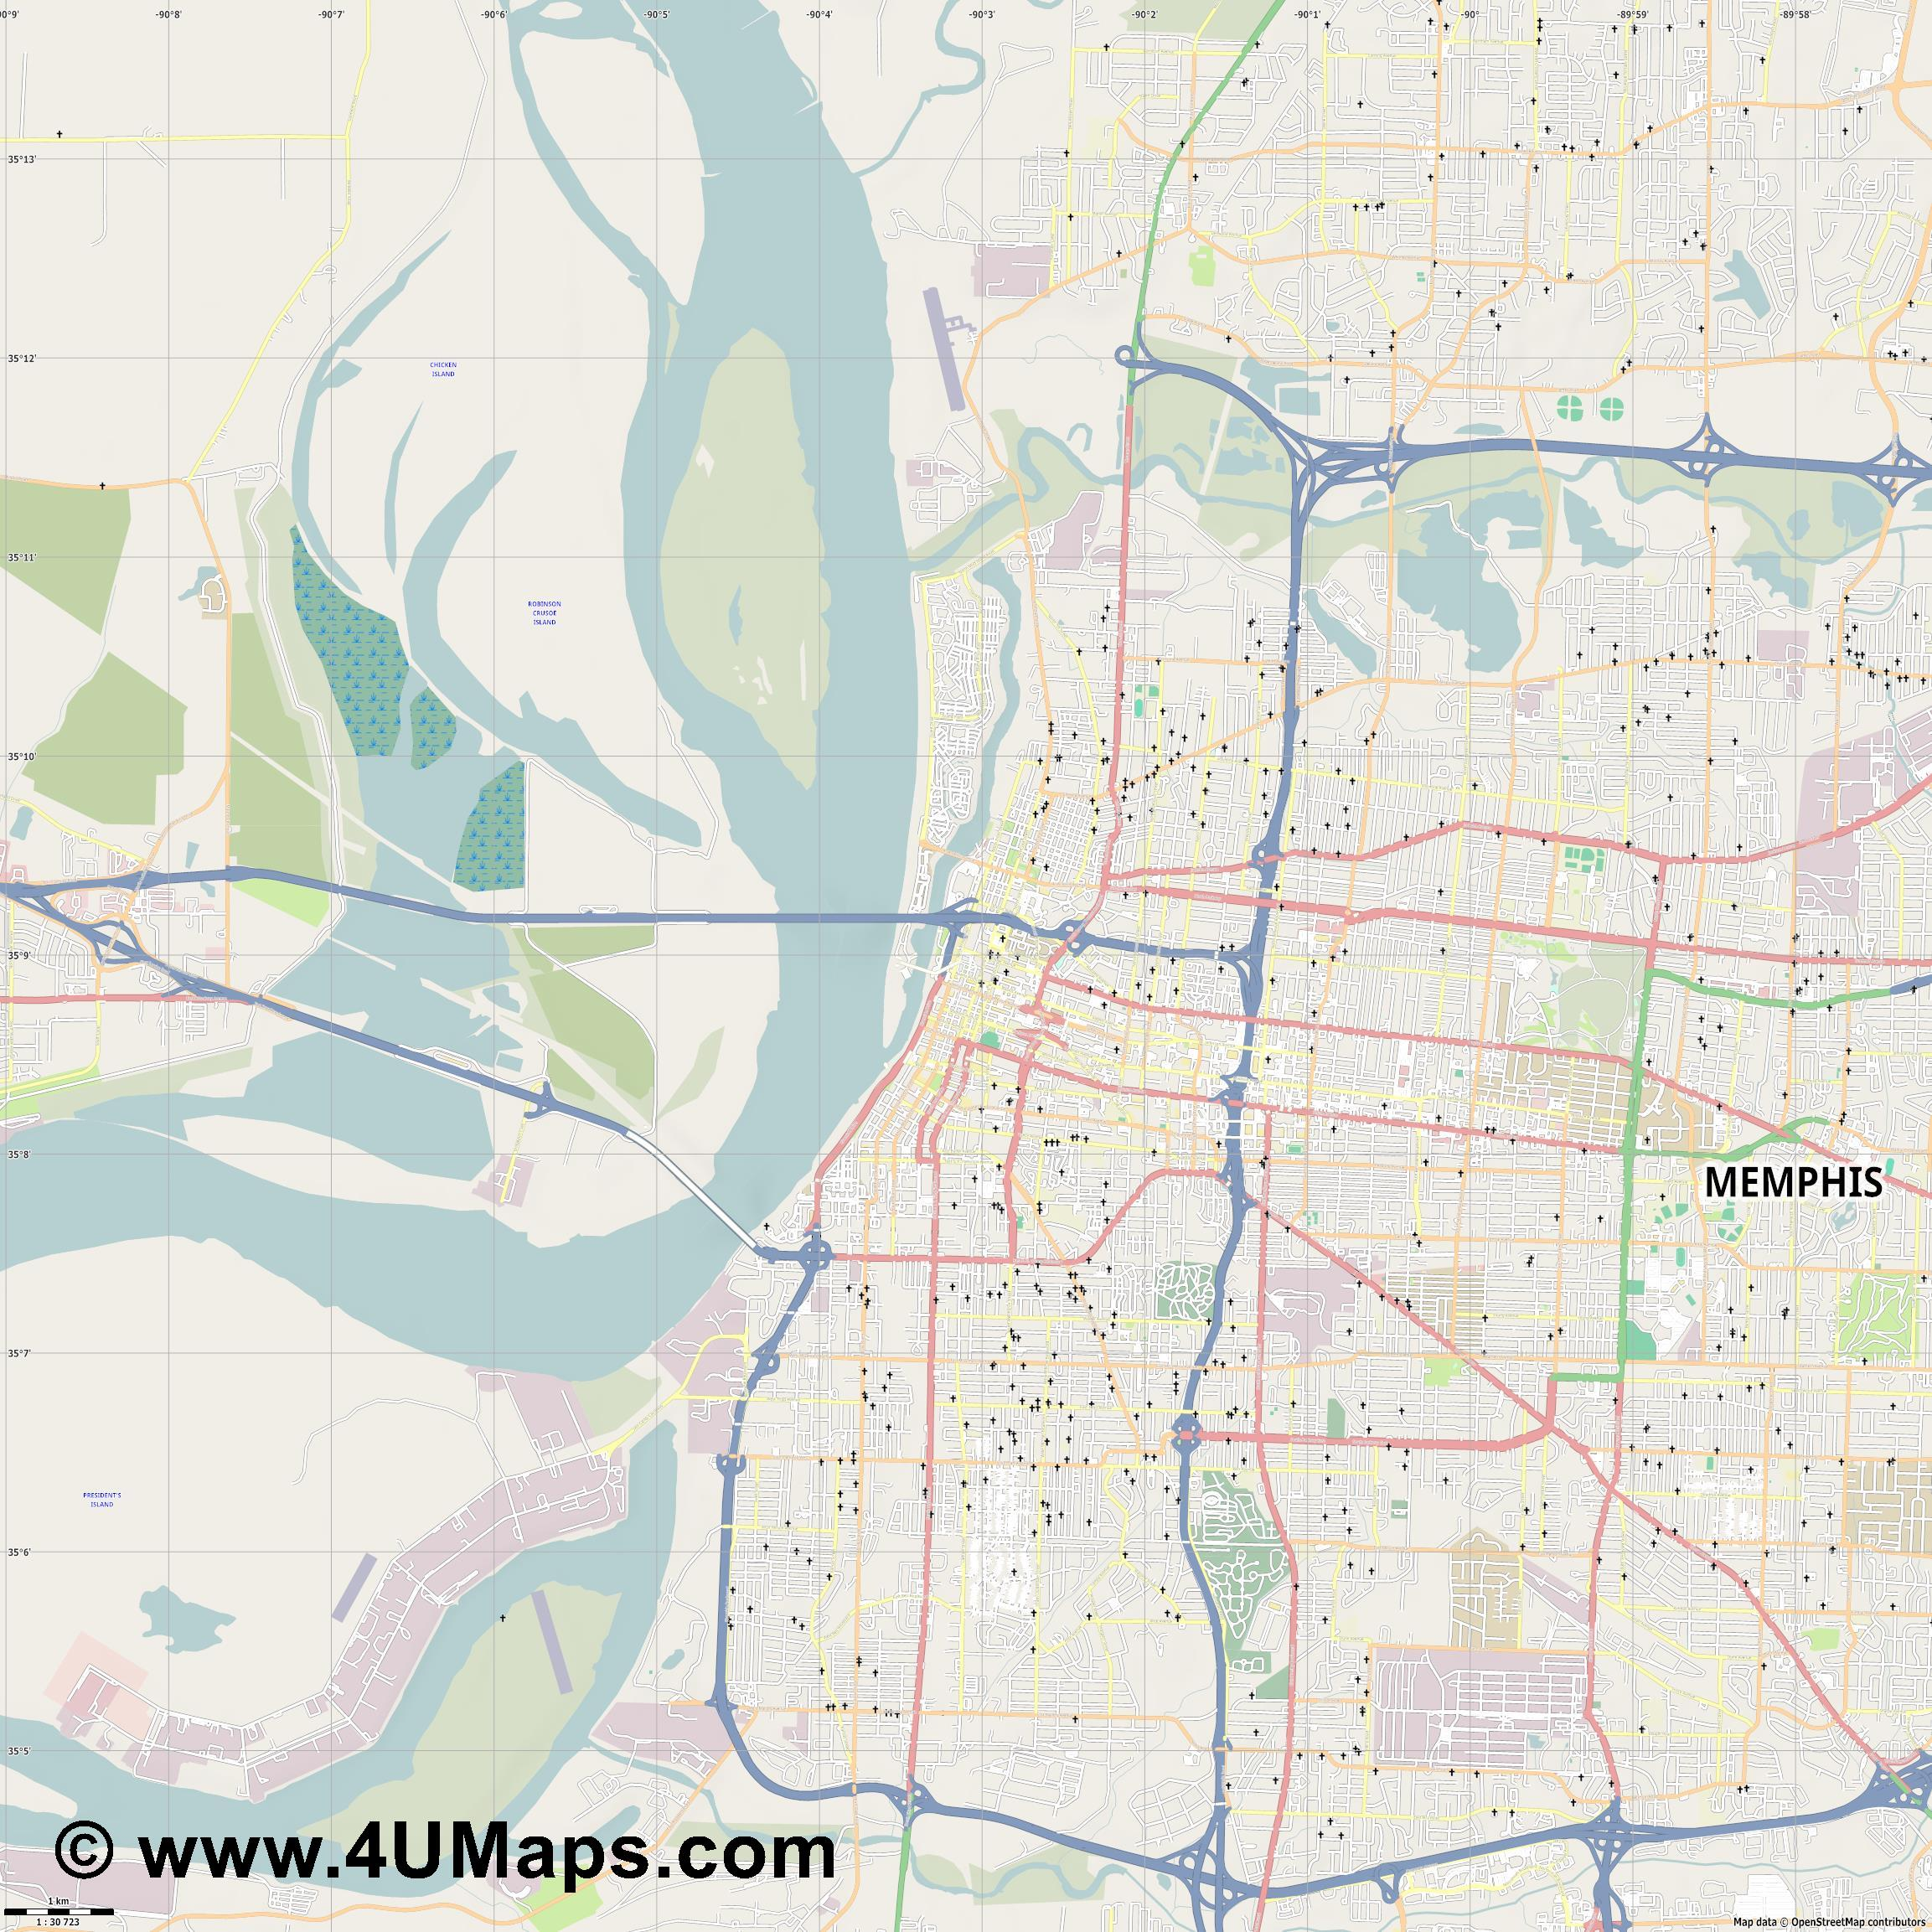 Memphis  jpg high detail, large area preview vector city map